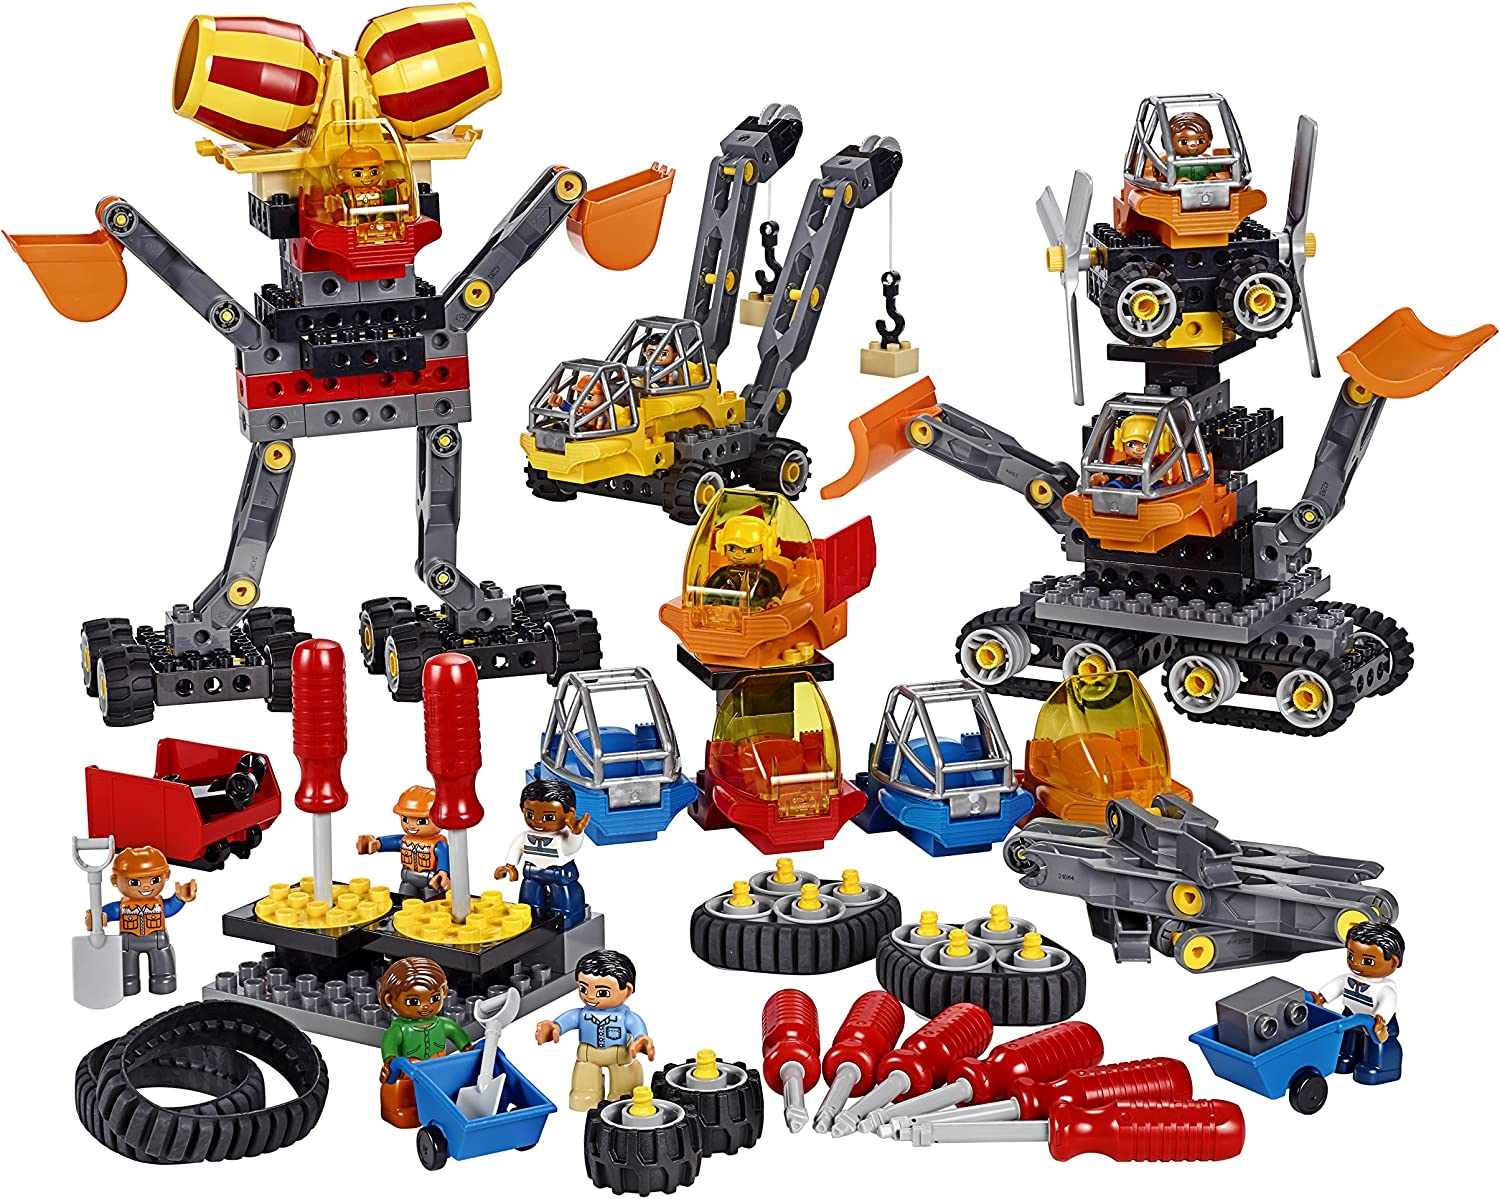 Lego Tech Machines DUPLO Set 45002, Fun Stem Engineering Toy & Steam Learning for Girls & Boys Ages 3 & Up (95Piece)